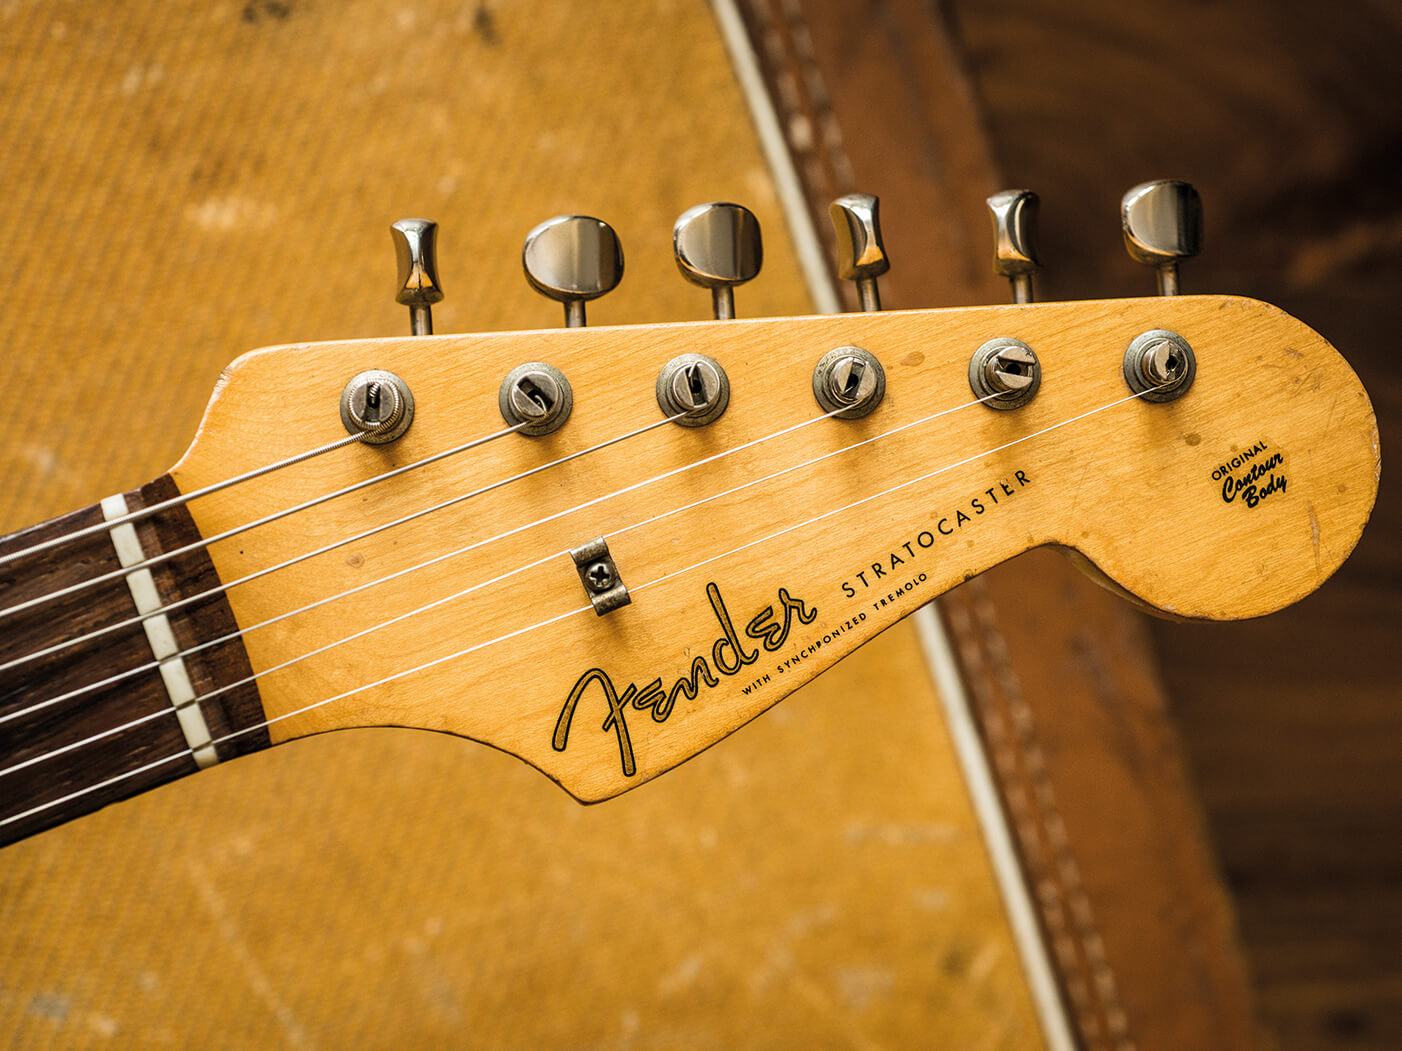 Fender Stratocaster distinctive headstock